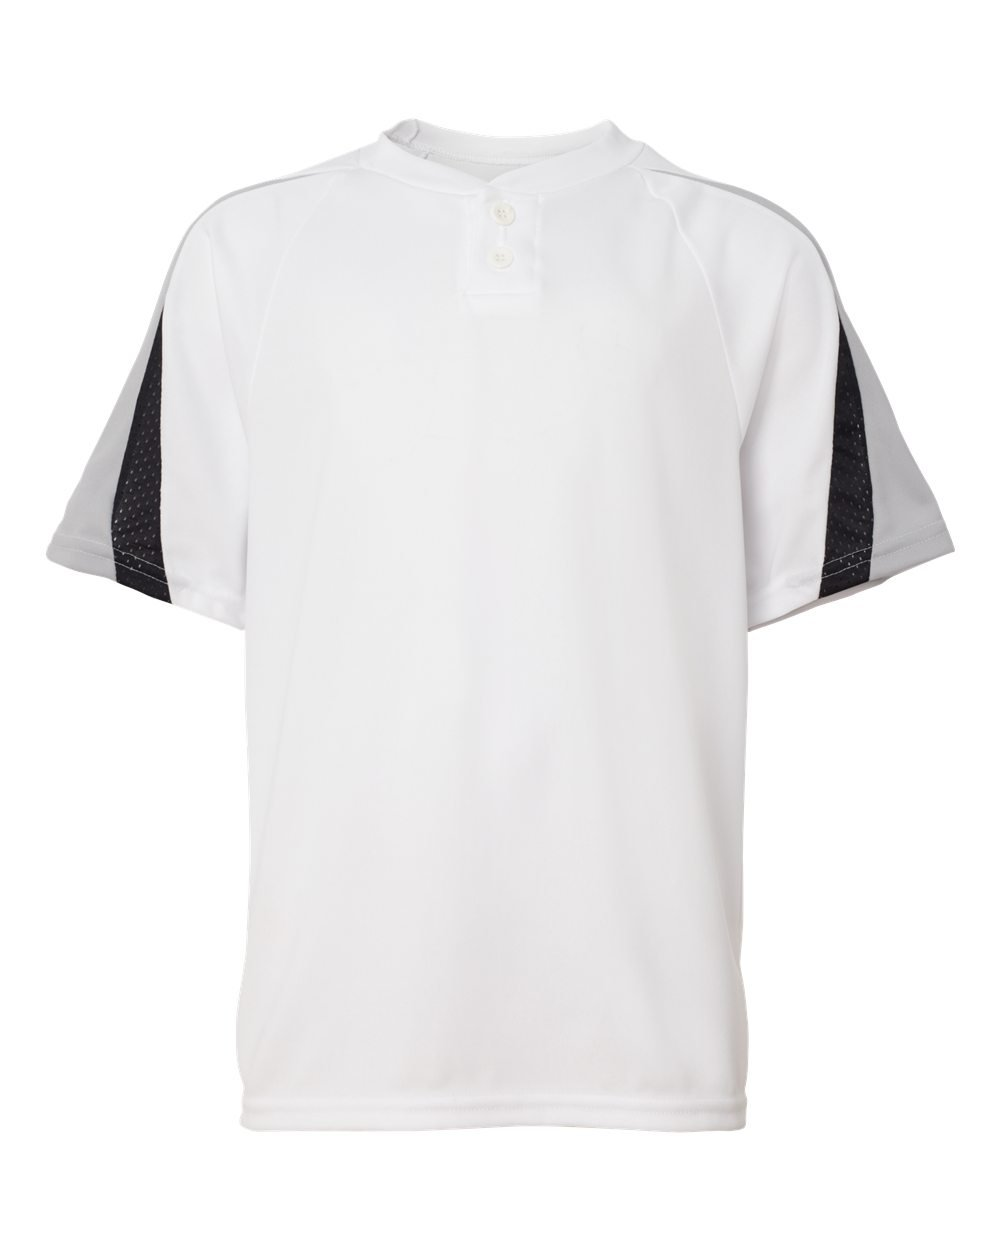 Augusta Sportswear Boys ' Power Plus野球ジャージー B007P86EQE Medium|White/Silver Grey/Black White/Silver Grey/Black Medium